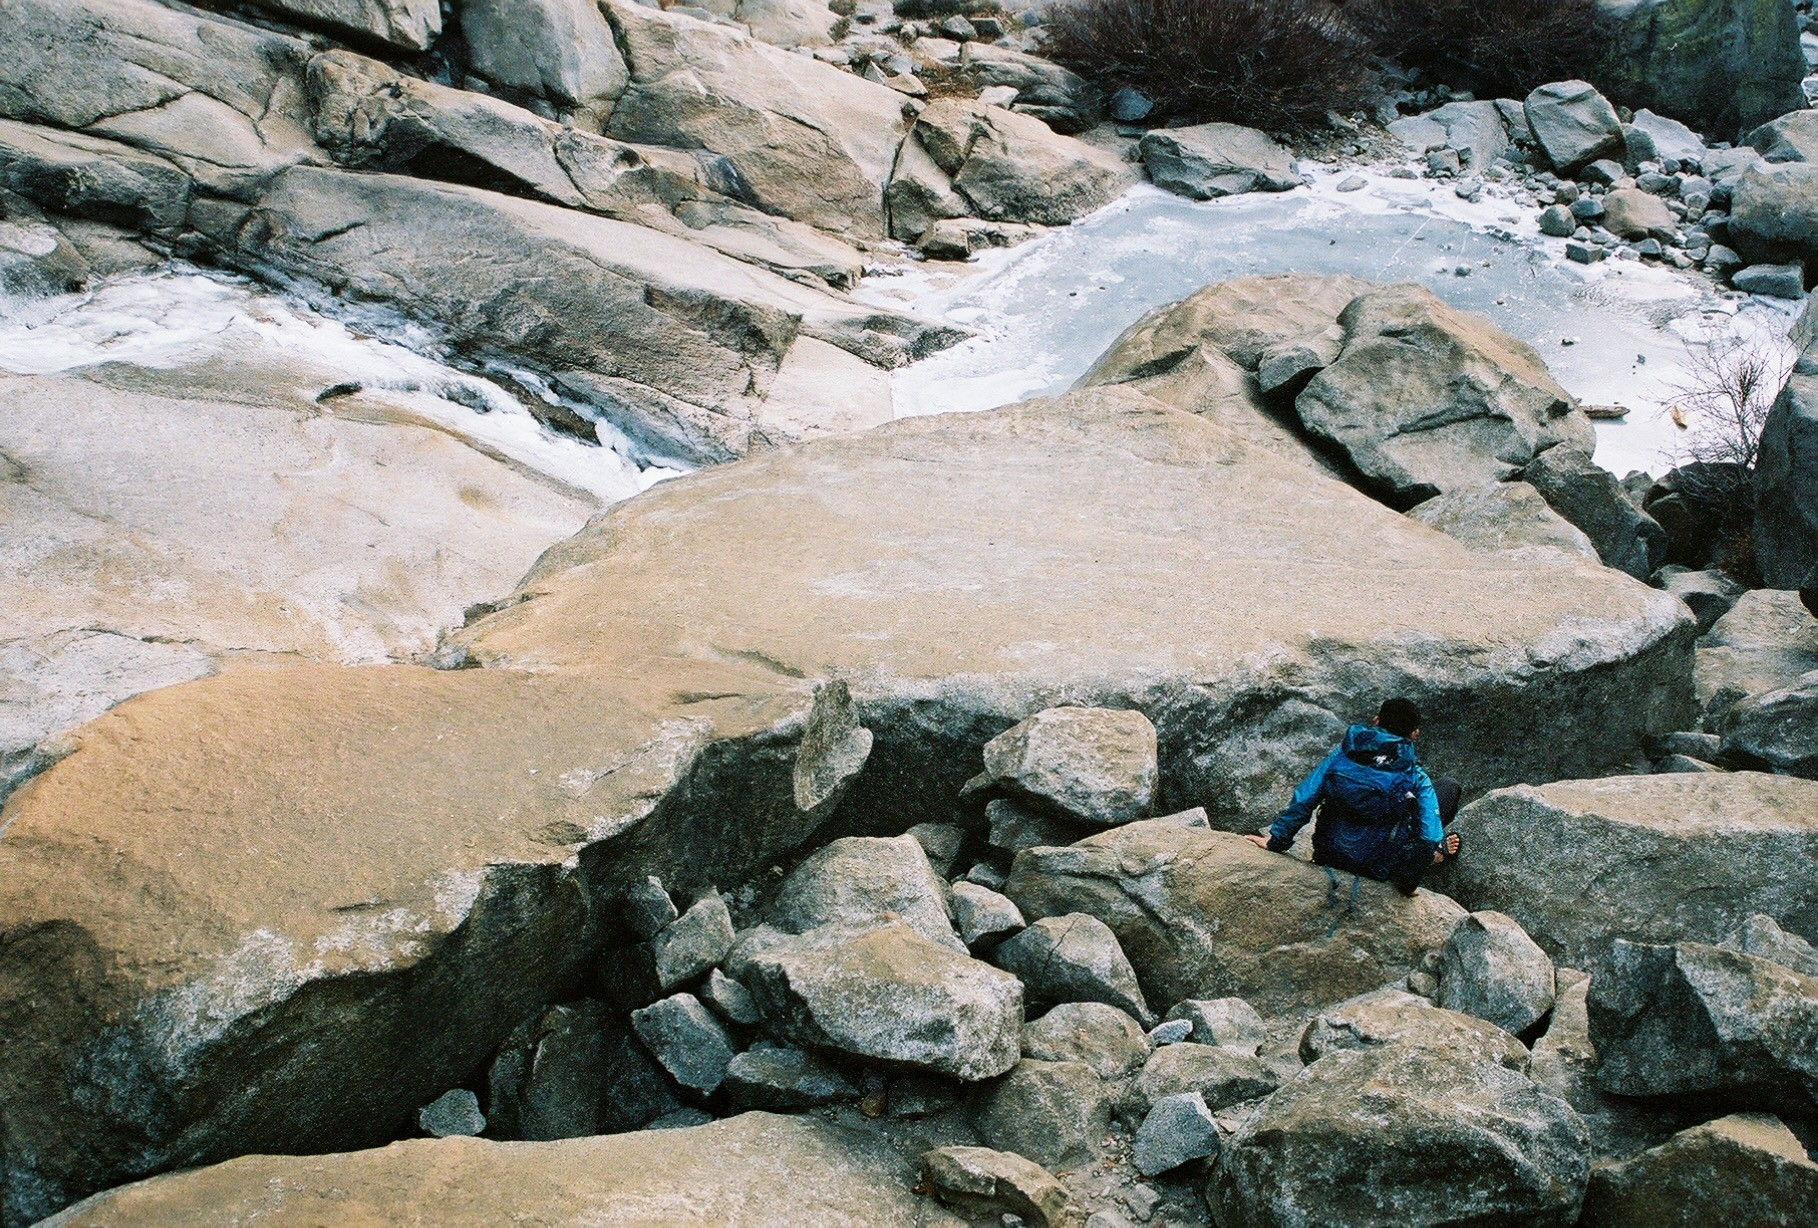 Me, climbing down some boulders, towards a frozen river.